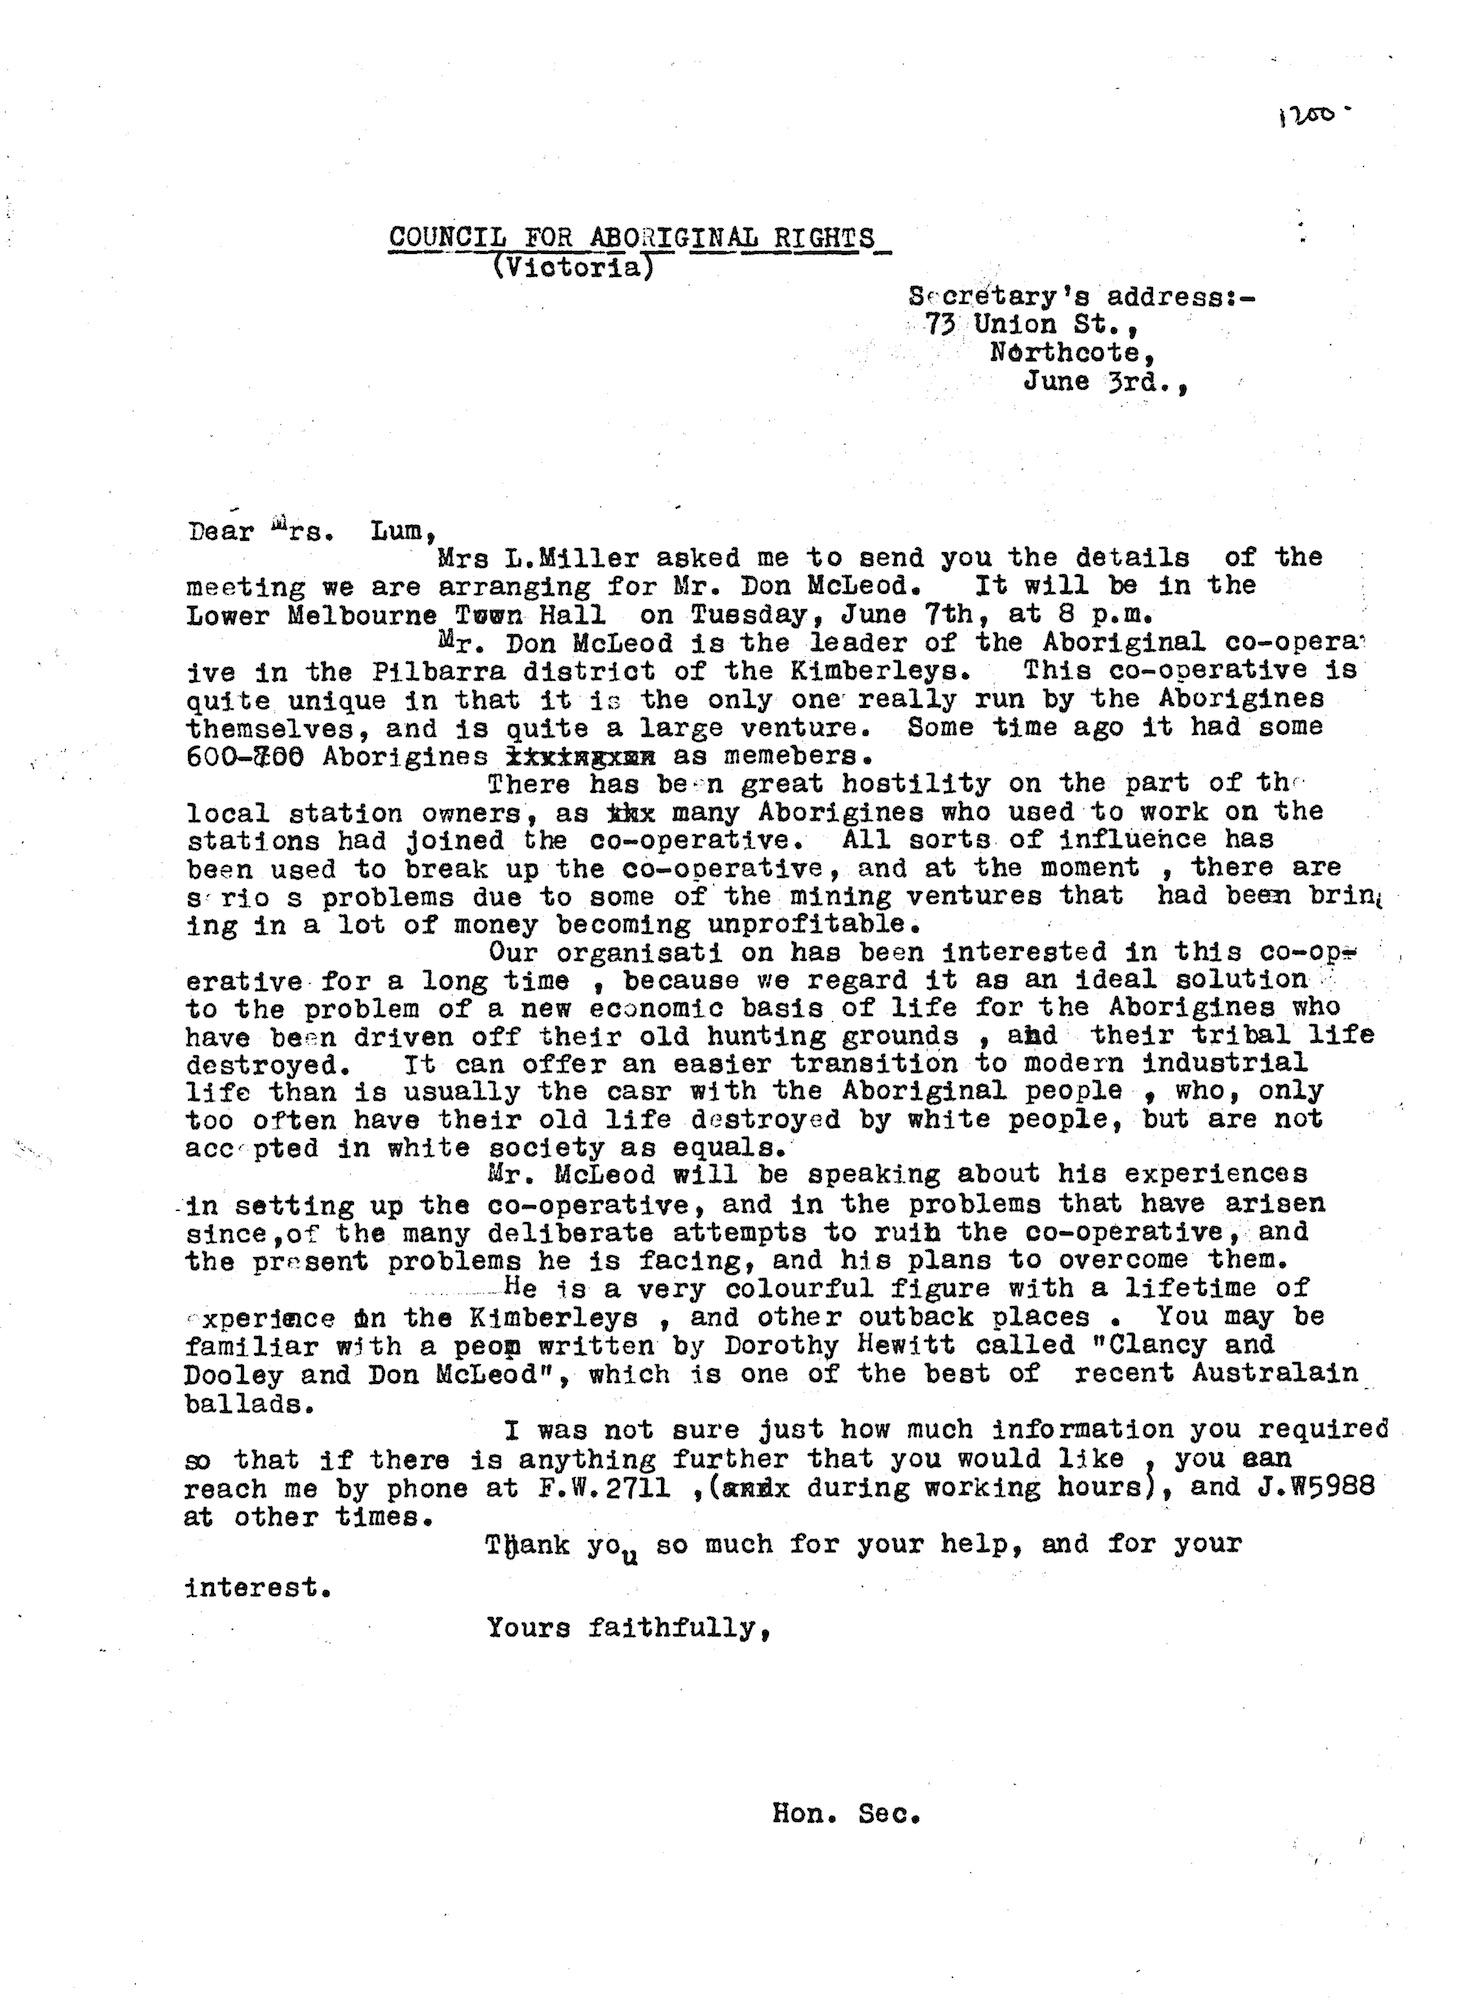 Shirley Andrews to Mrs. Lum, 3 June 1955